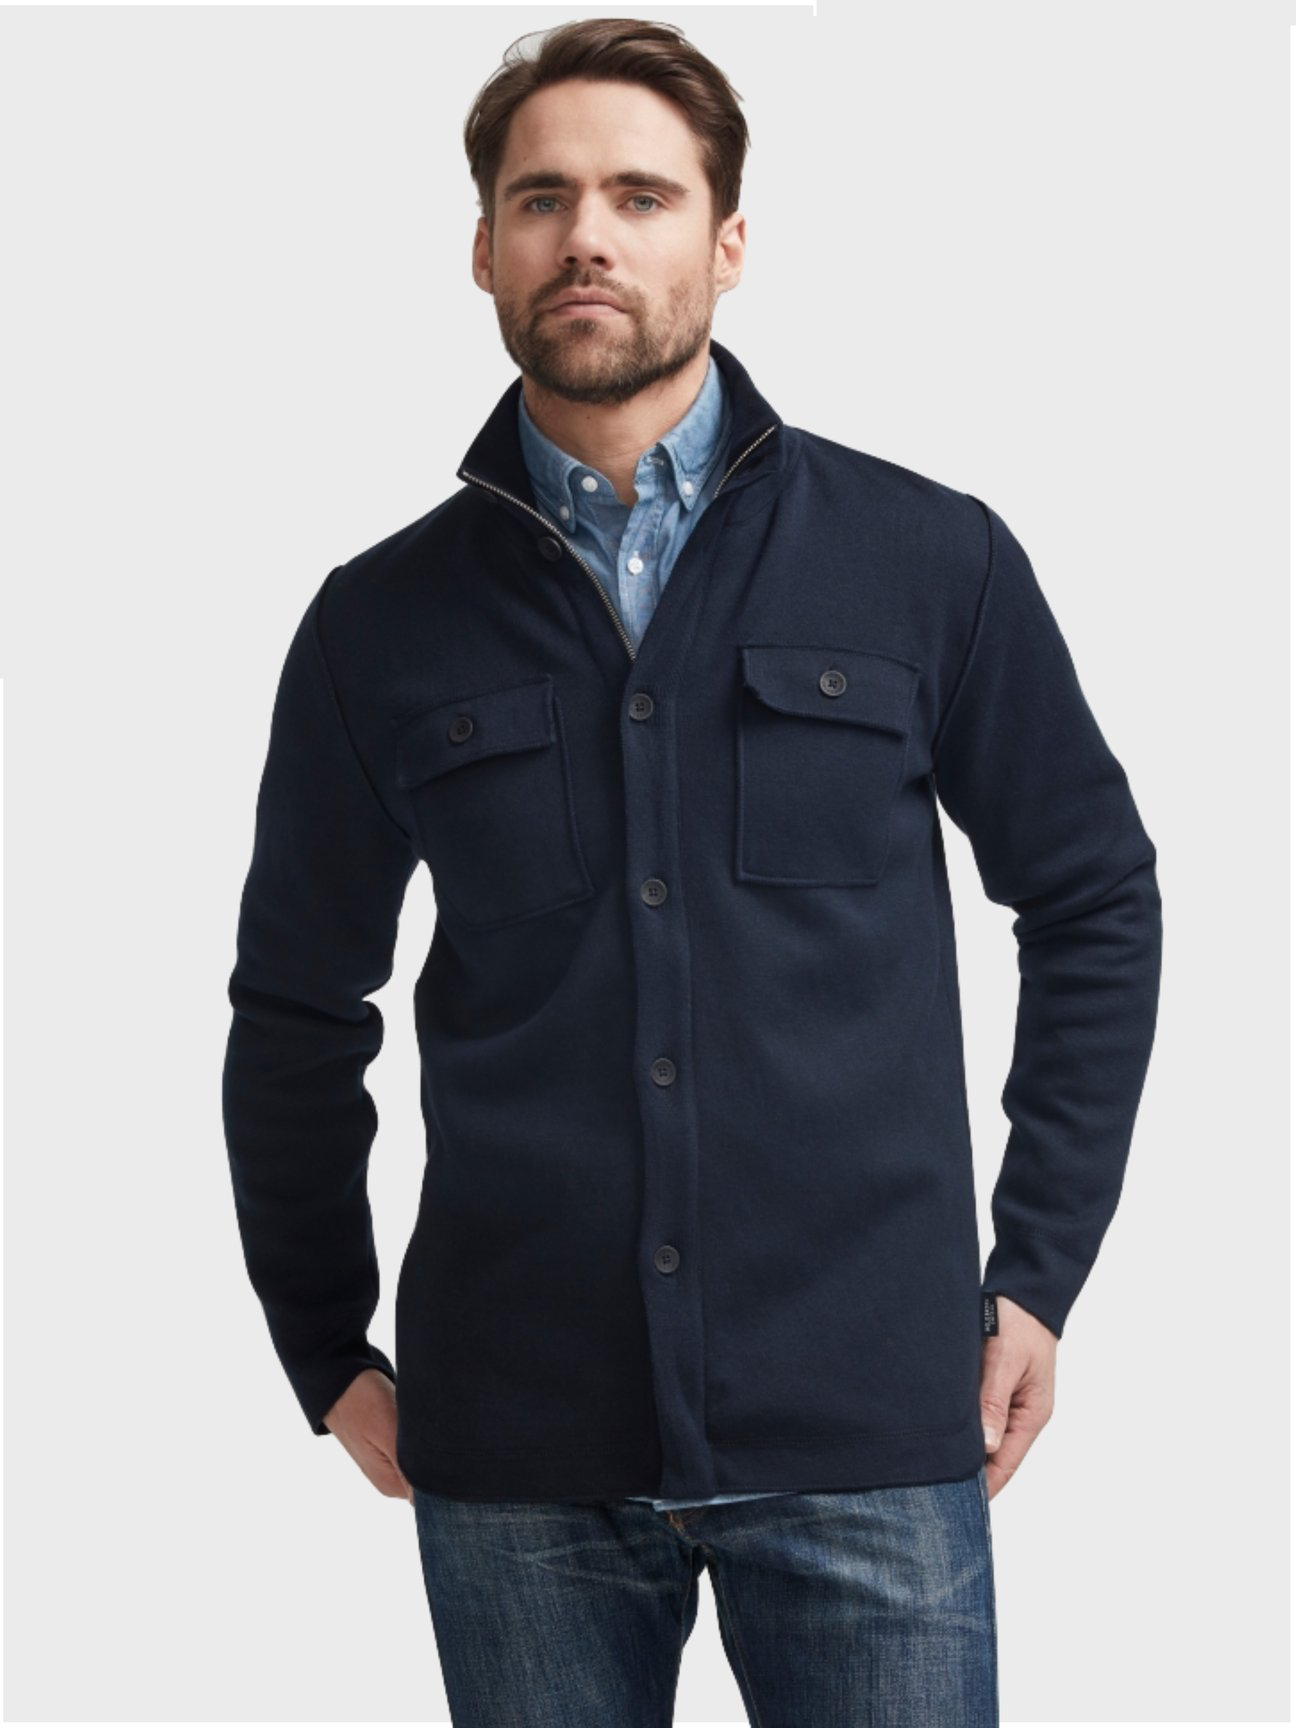 Edwin Shirt Jacket WP | Navy